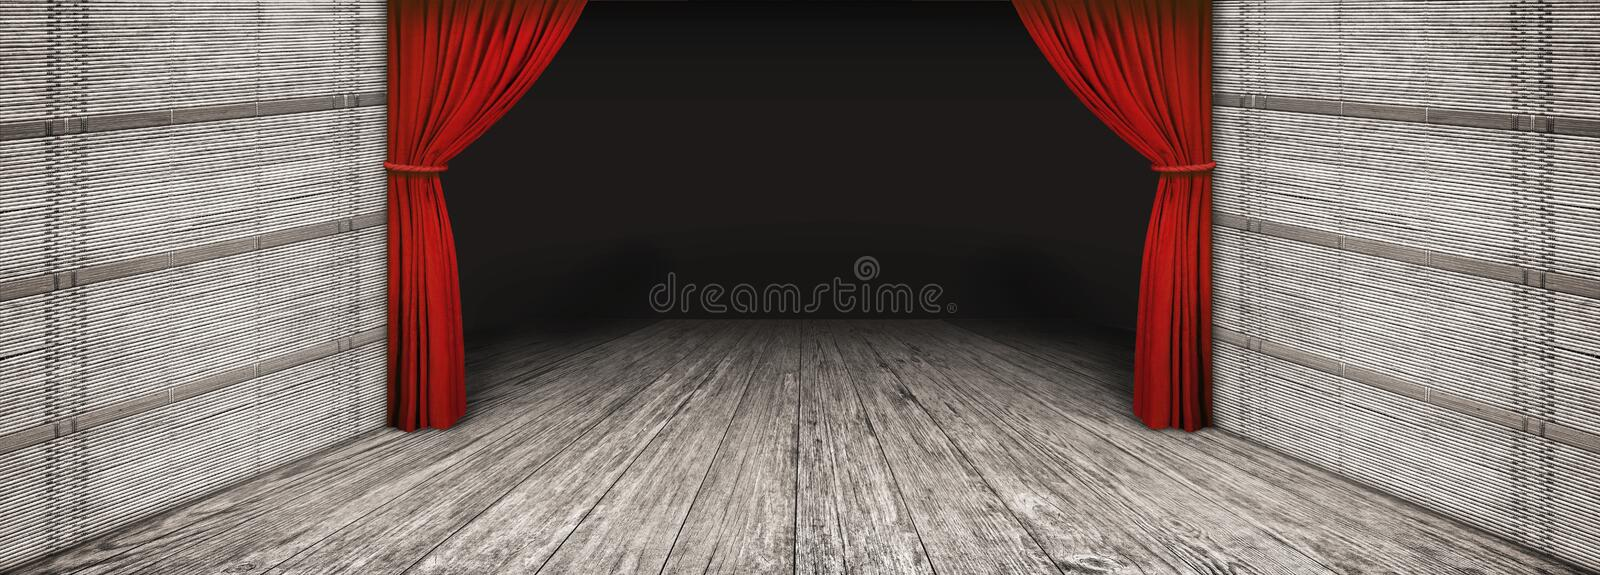 High resolution rustic wooden theater scenery with side folded red curtain and darkened empty stage.  stock illustration